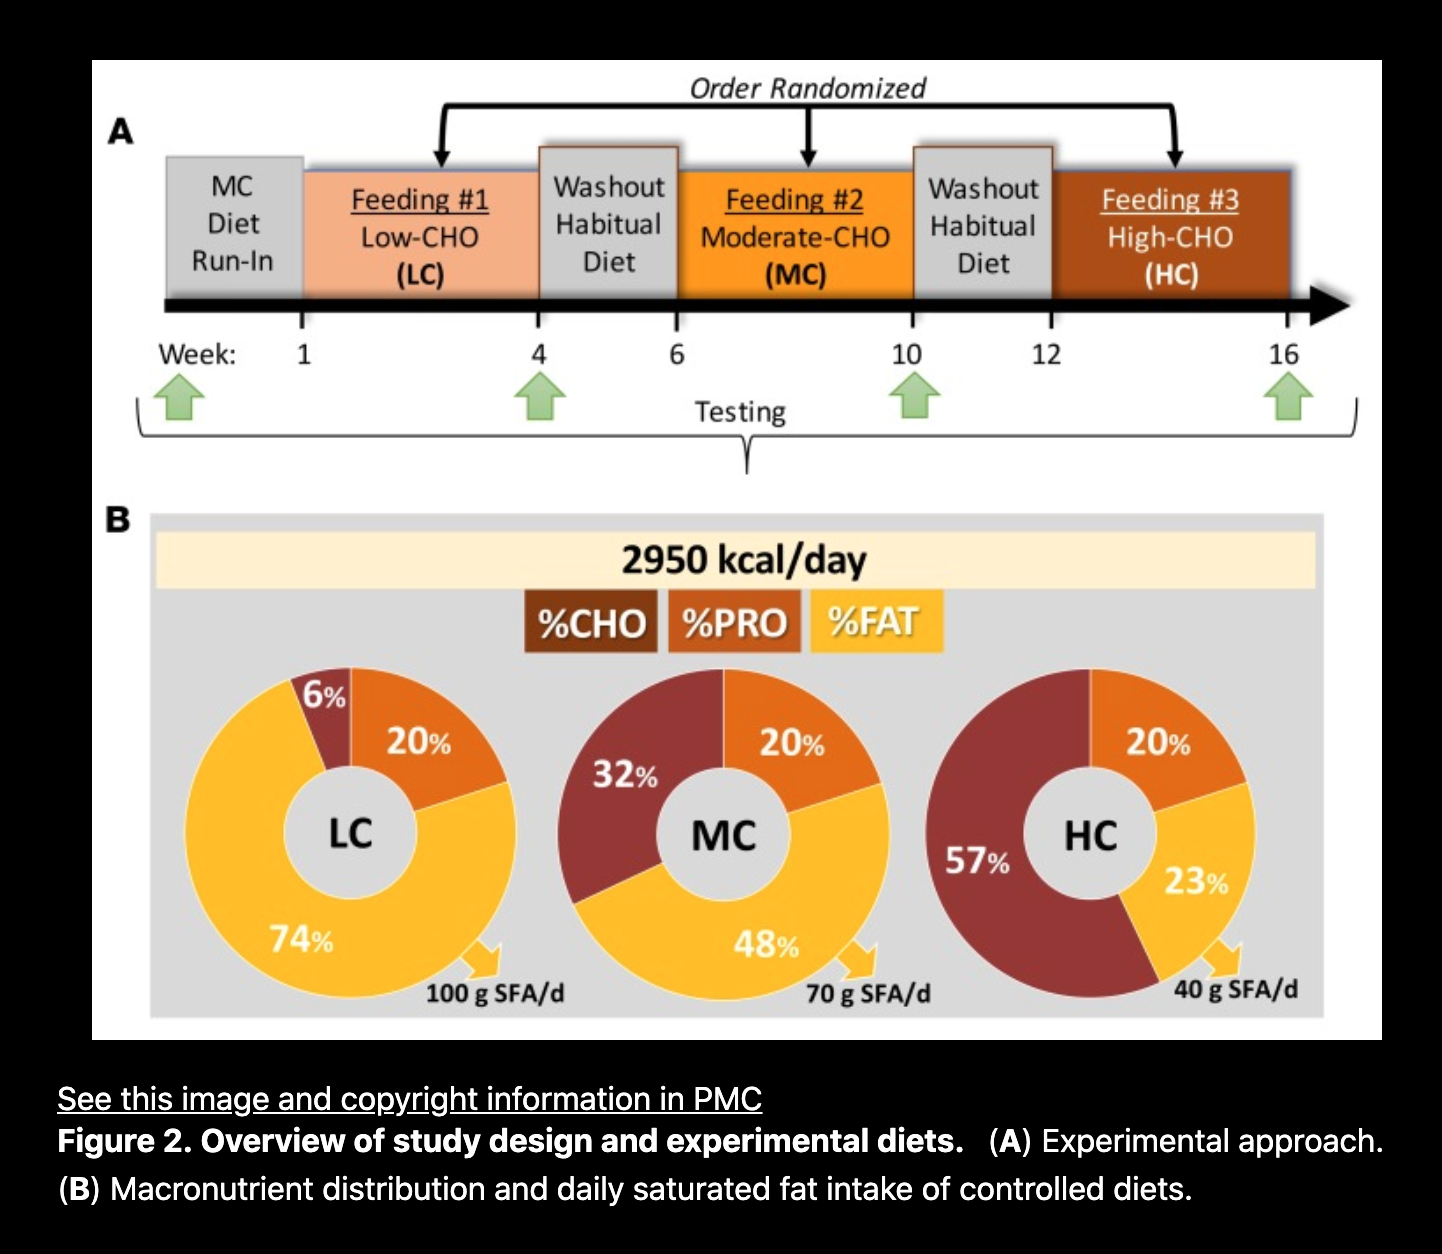 """Hyde, Parker N., Teryn N. Sapper, Christopher D. Crabtree, Richard A. LaFountain, Madison L. Bowling, Alex Buga, Brandon Fell, et al. """"Dietary Carbohydrate Restriction Improves Metabolic Syndrome Independent of Weight Loss.""""  JCI Insight  4, no. 12 (June 20, 2019): e128308.  https://doi.org/10.1172/jci.insight.128308 ."""